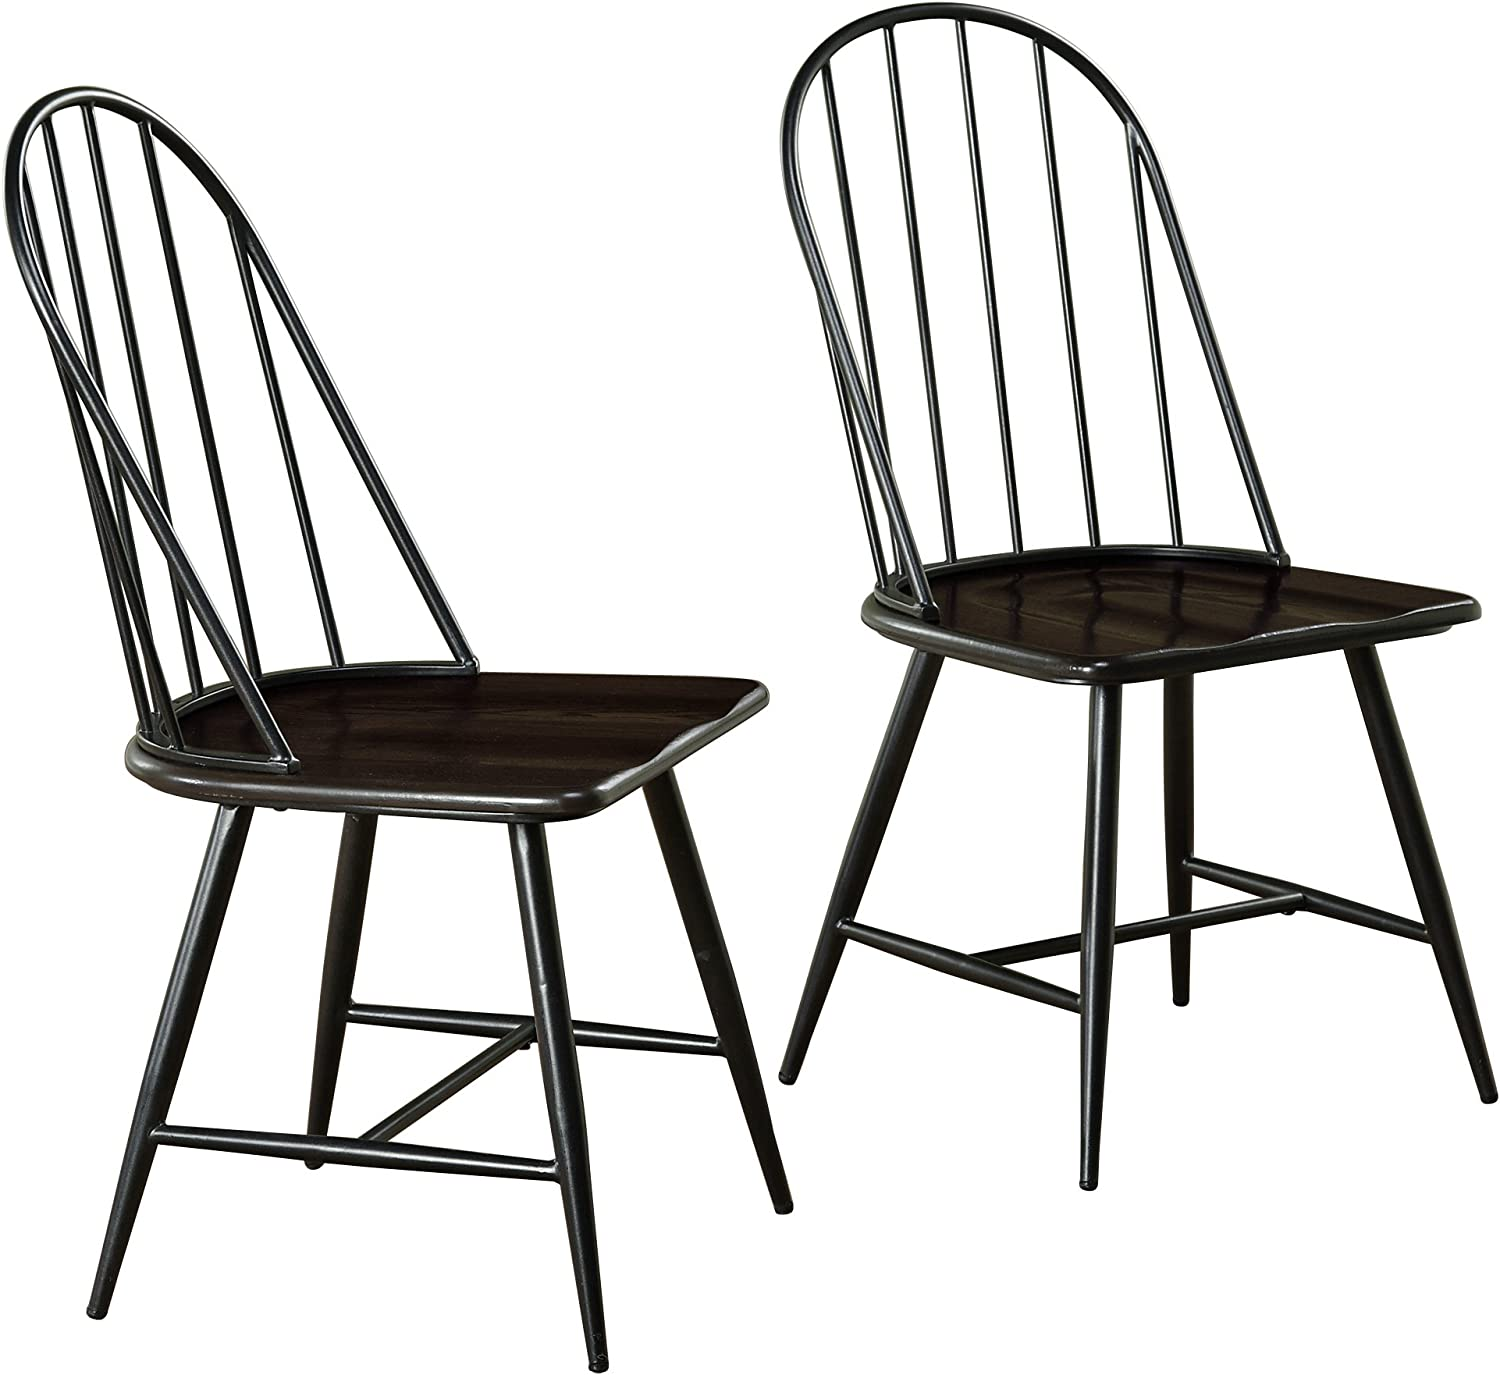 Target Marketing Systems Windsor Set of 2 Mixed Media Spindle Back Dining Chairs with Saddle Seat, Set of 2, Black Espresso